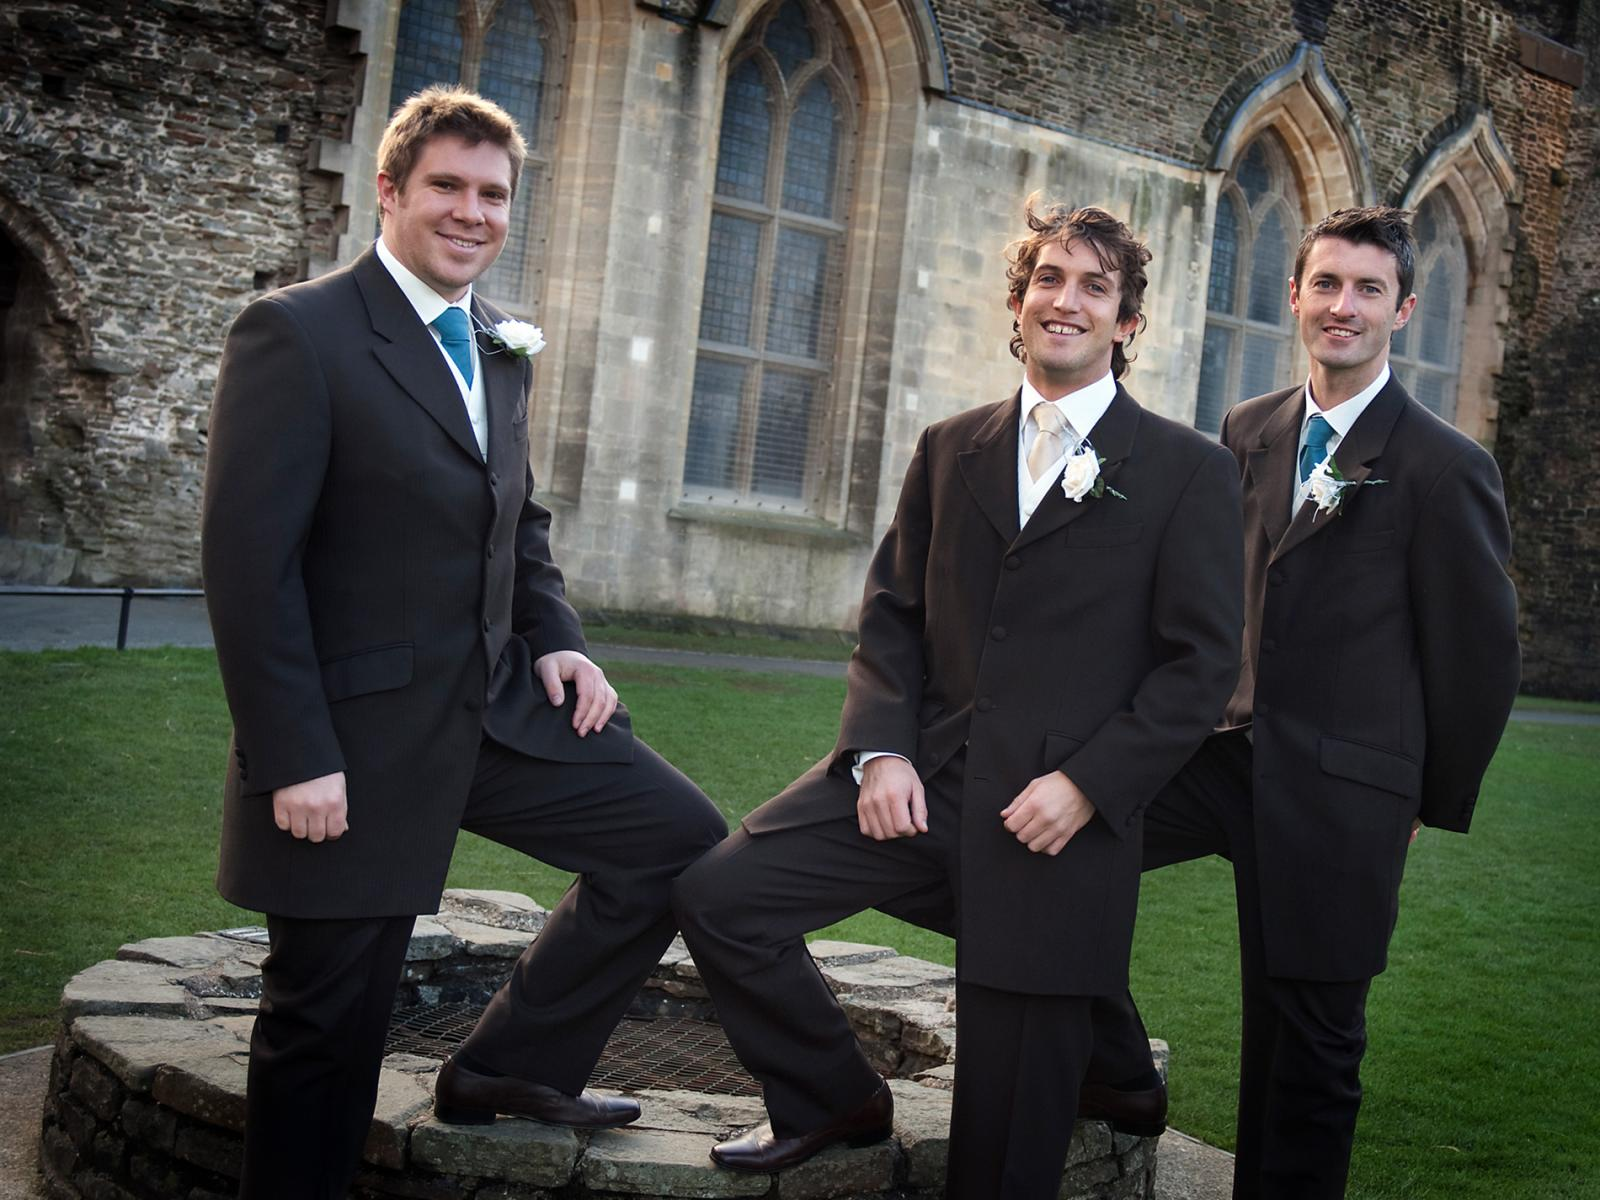 Caerhilly-wedding-photographer-Groom-and-best-men-Caerphilly-castle wedding photography